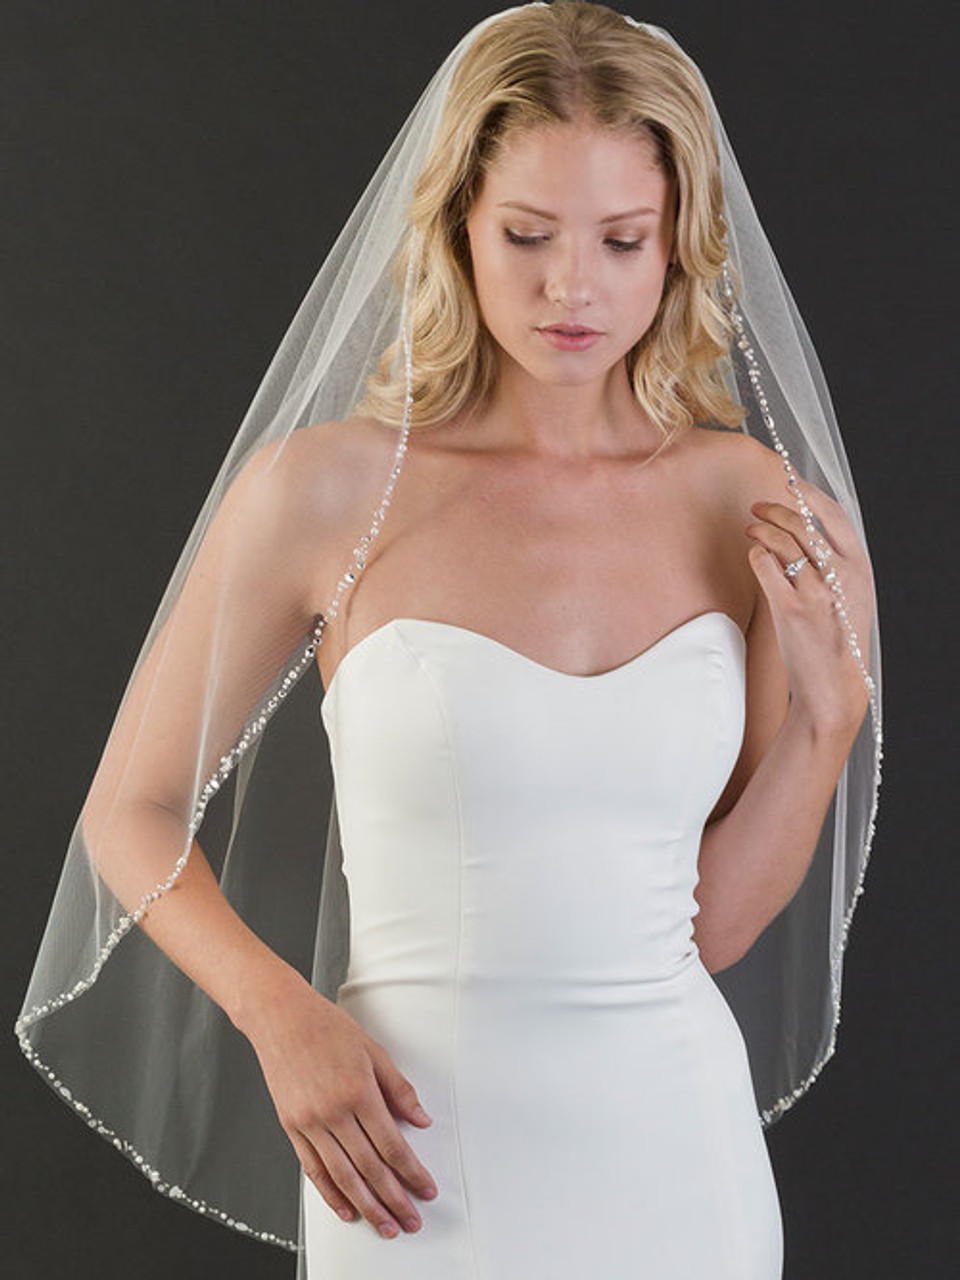 Bel Aire Bridal Veils V7456 - 1-tier fingertip veil with narrow edge of pearls, beads, and rhinestones